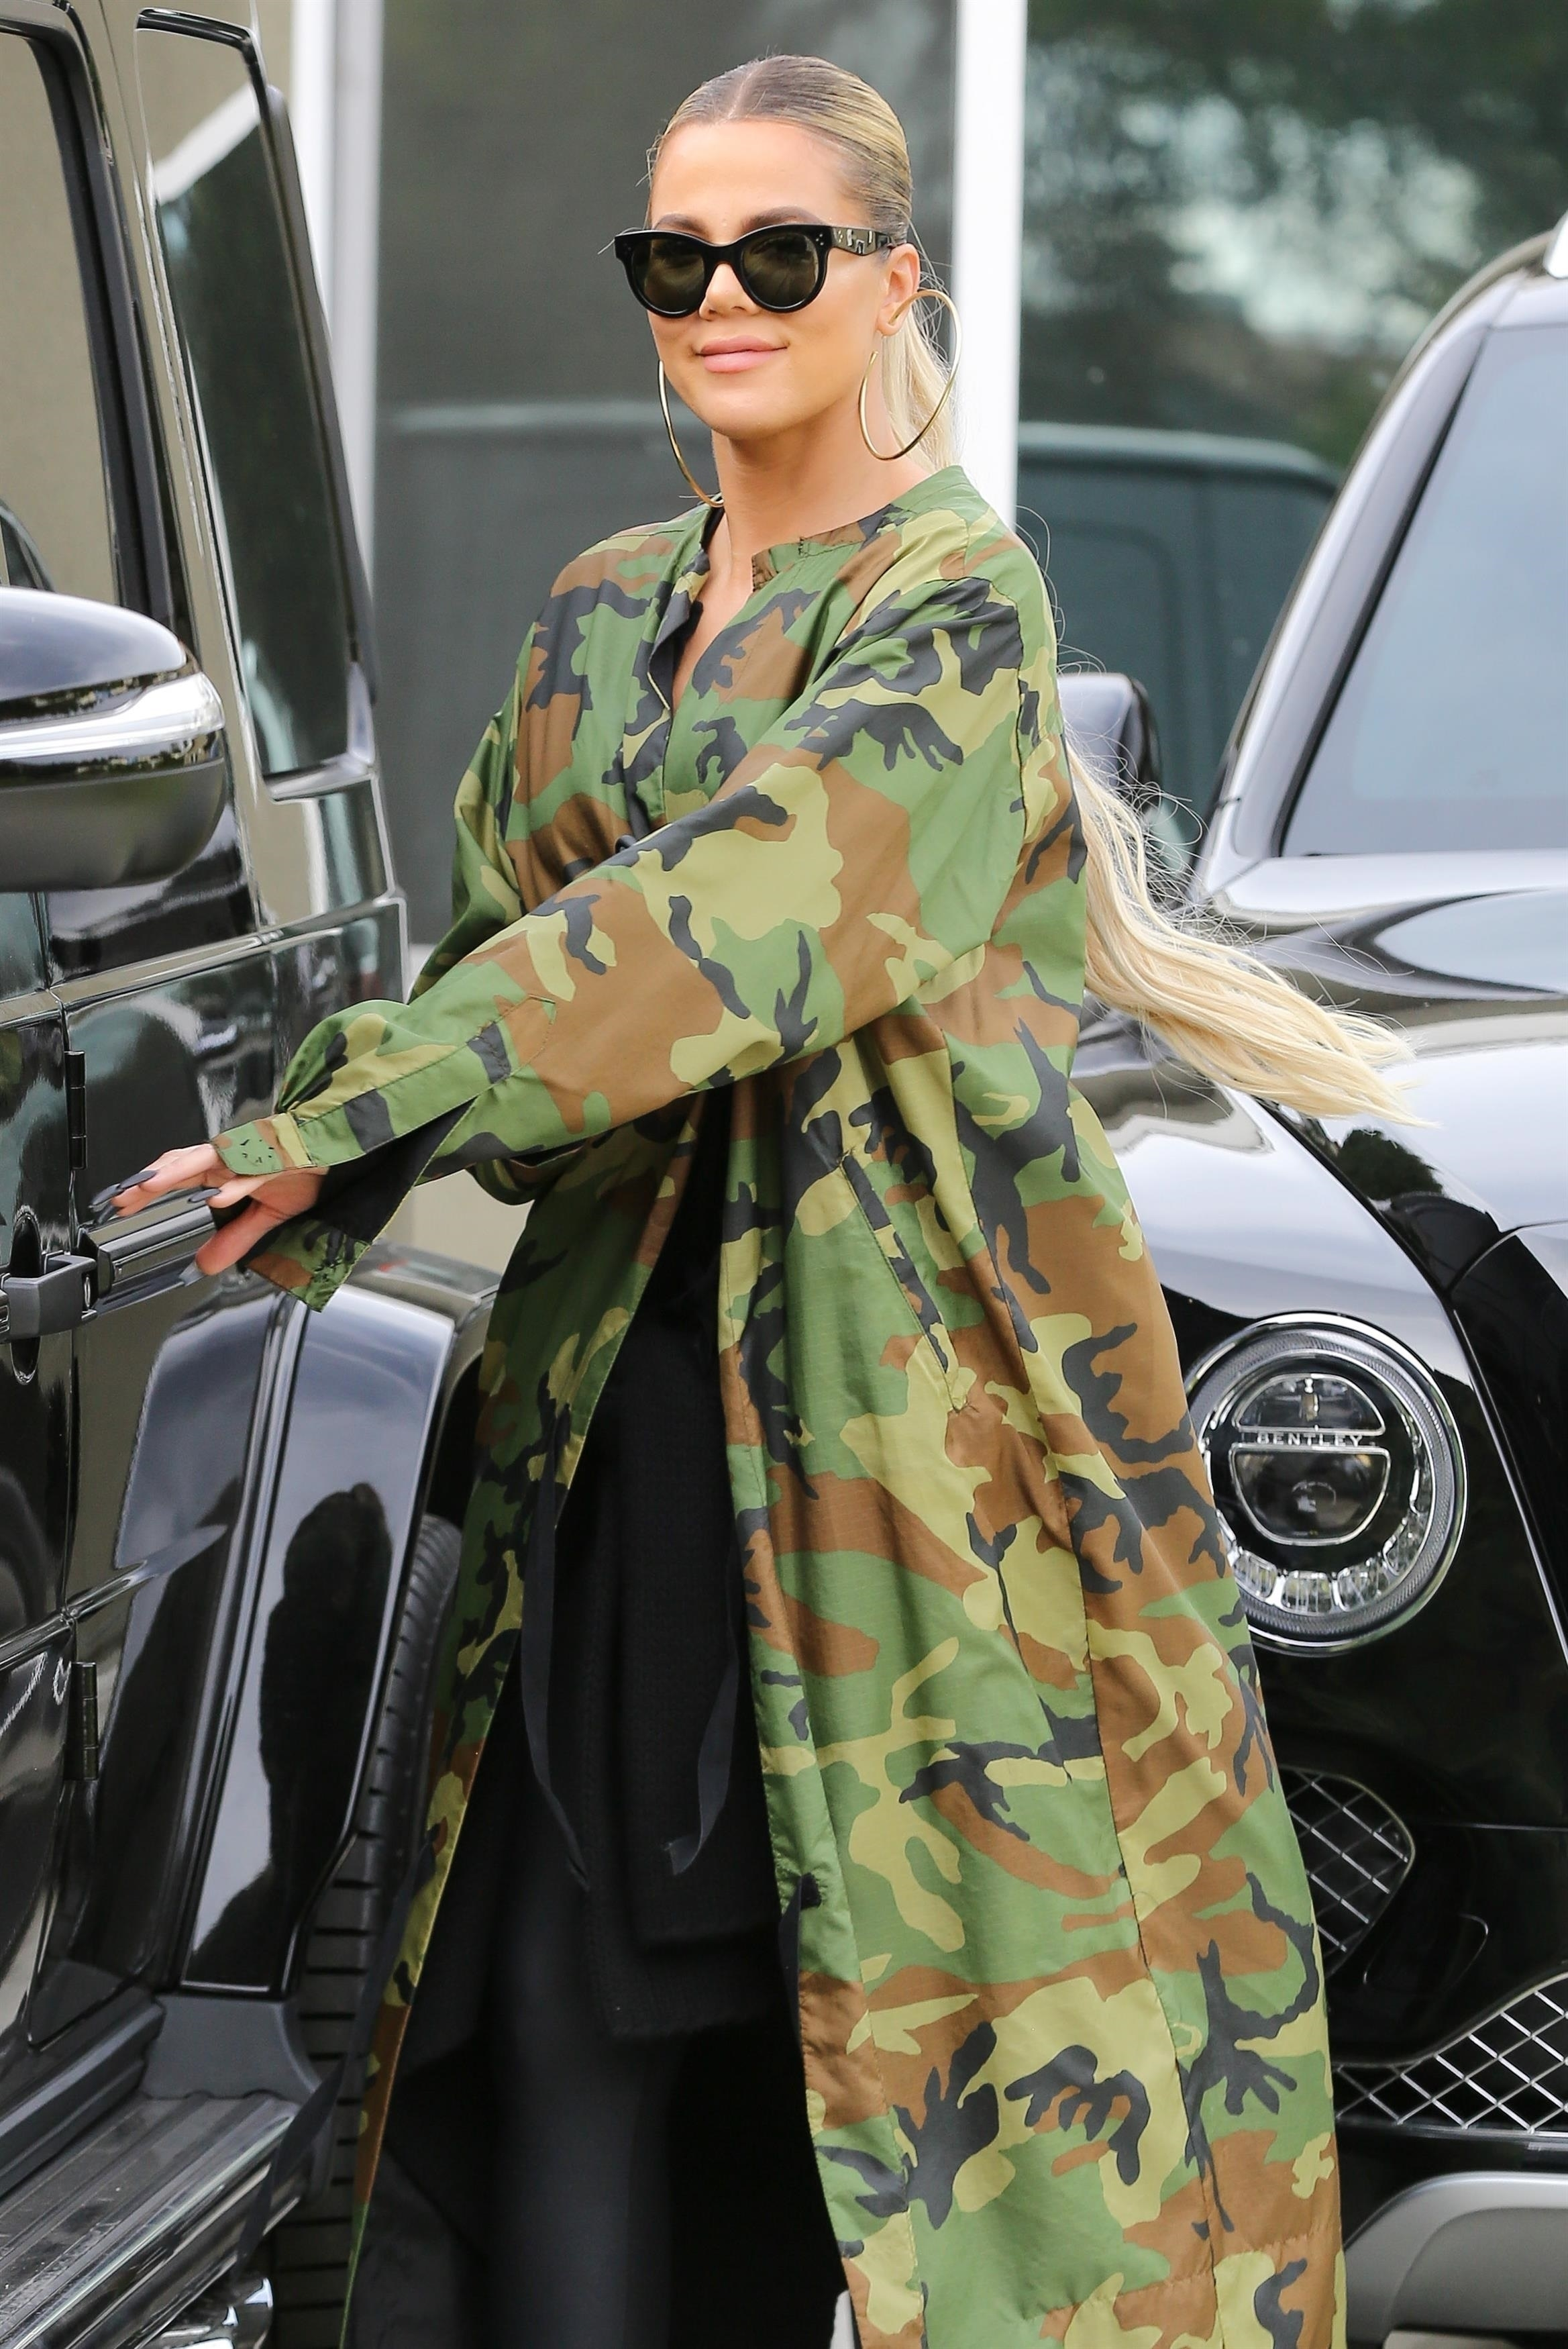 Oct 21: KHLOE KARDASHIAN VISITS BFF MALIKA HAQQ'S NEW HOUSE IN LA